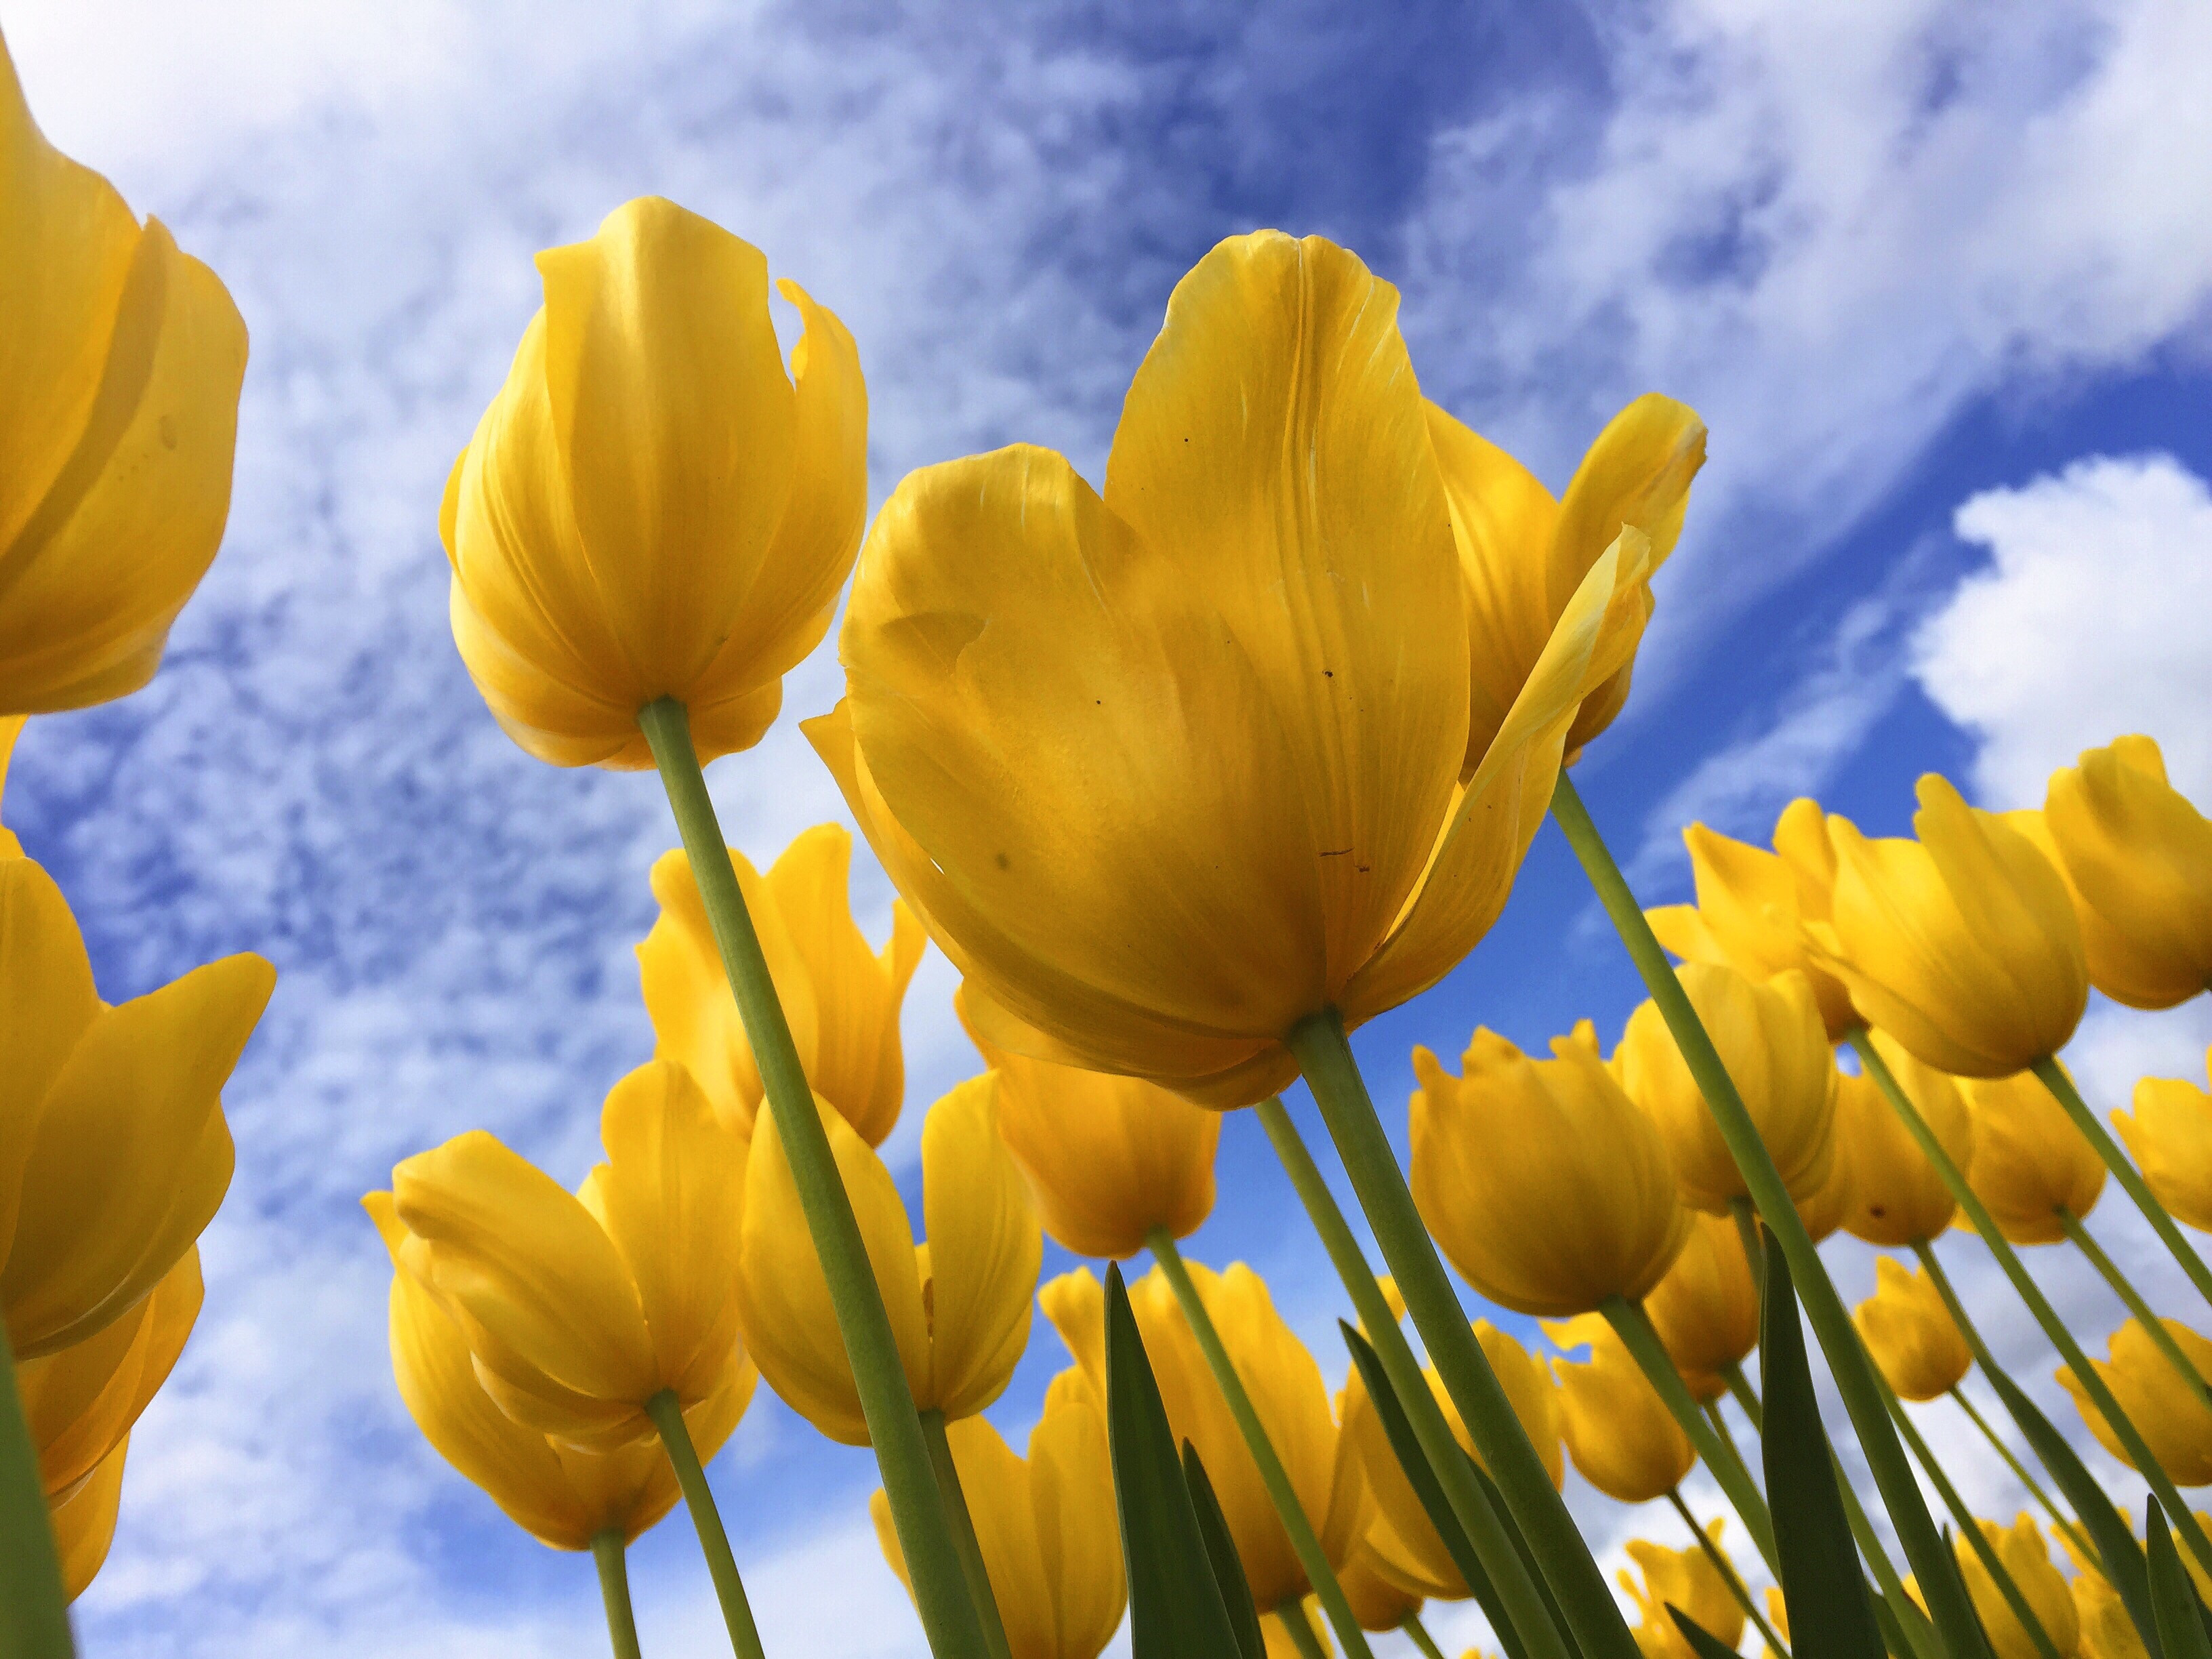 yellow tulips against a blue sky with some white clouds.